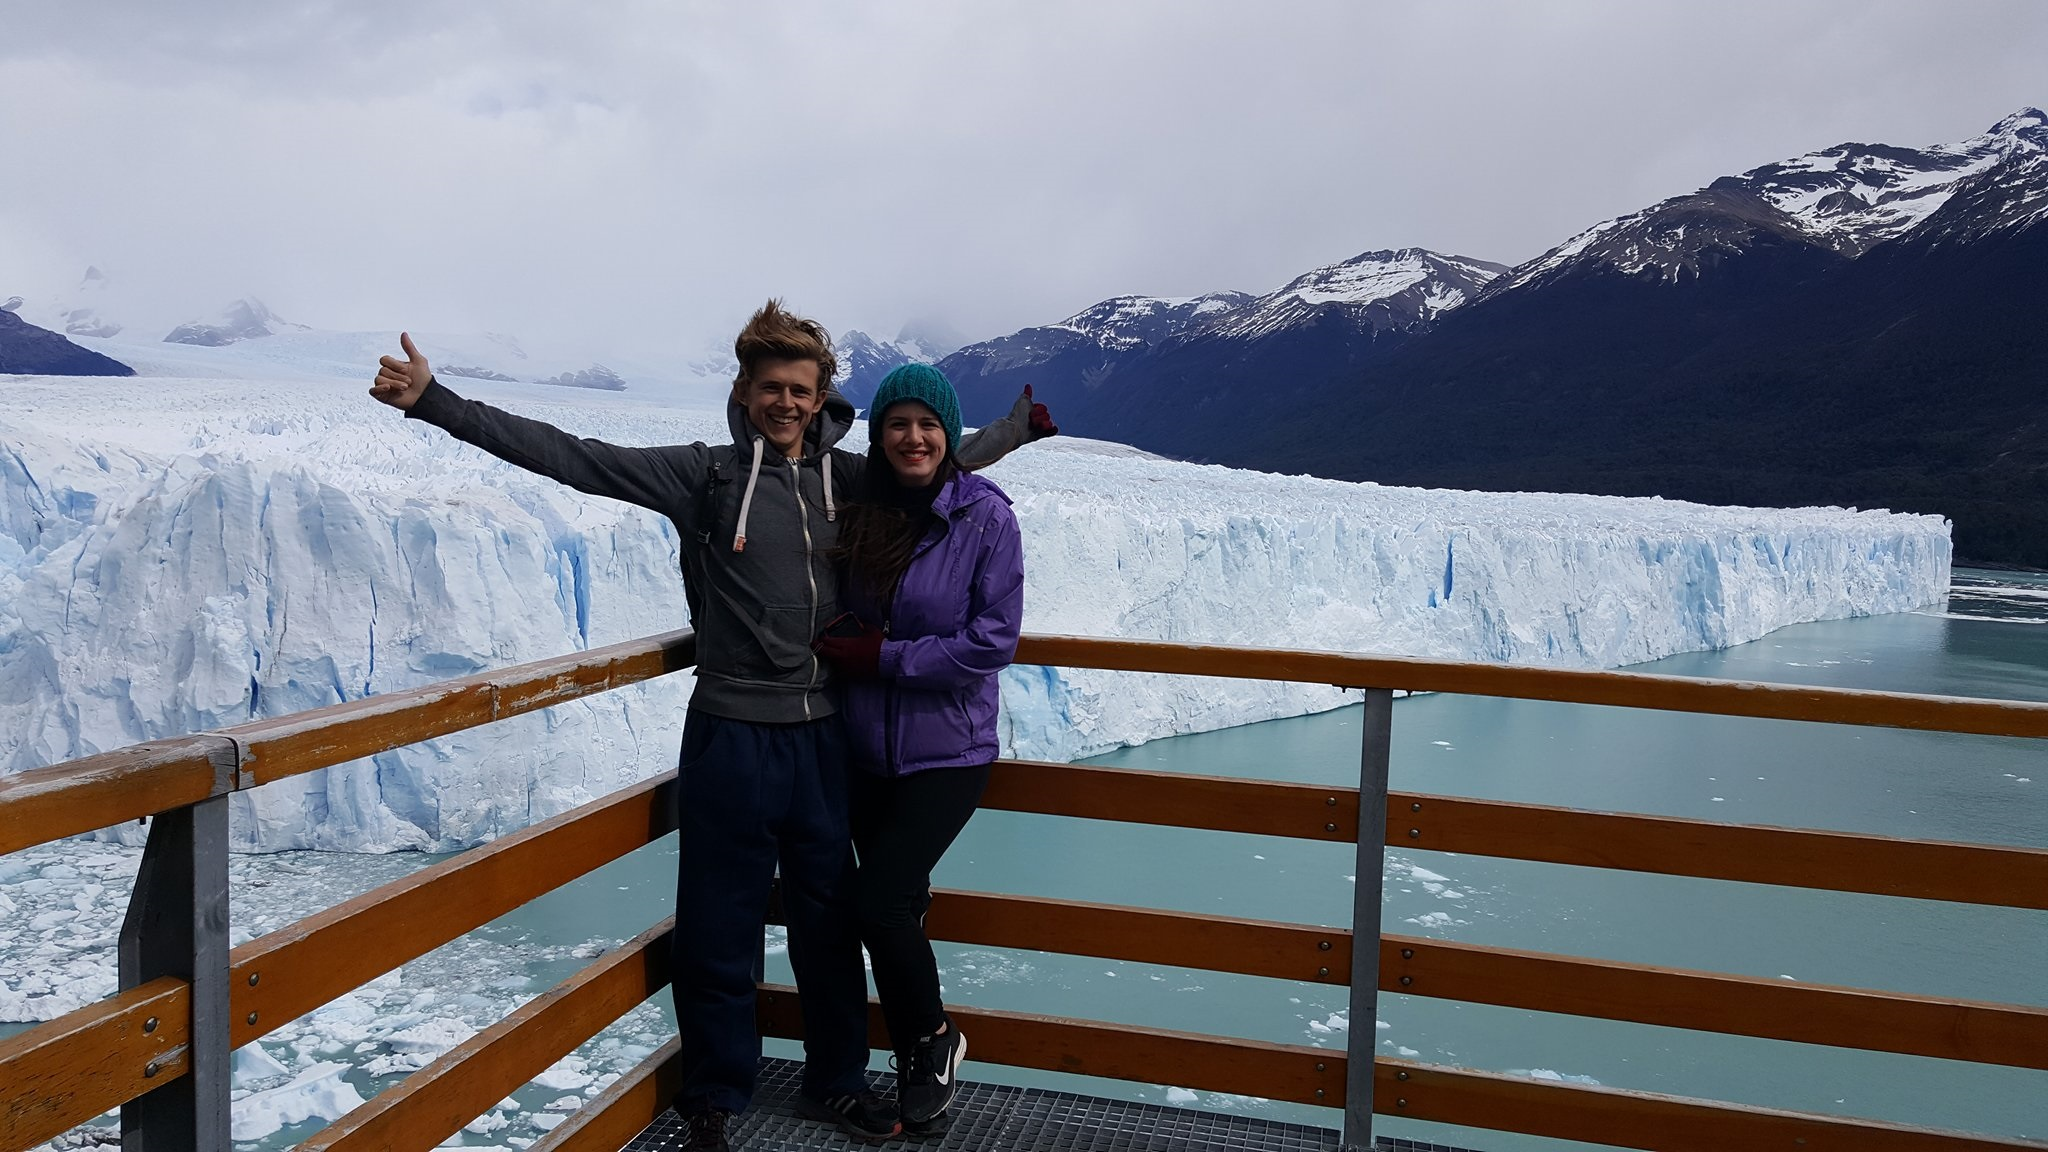 In front of Perito Moreno Glacier